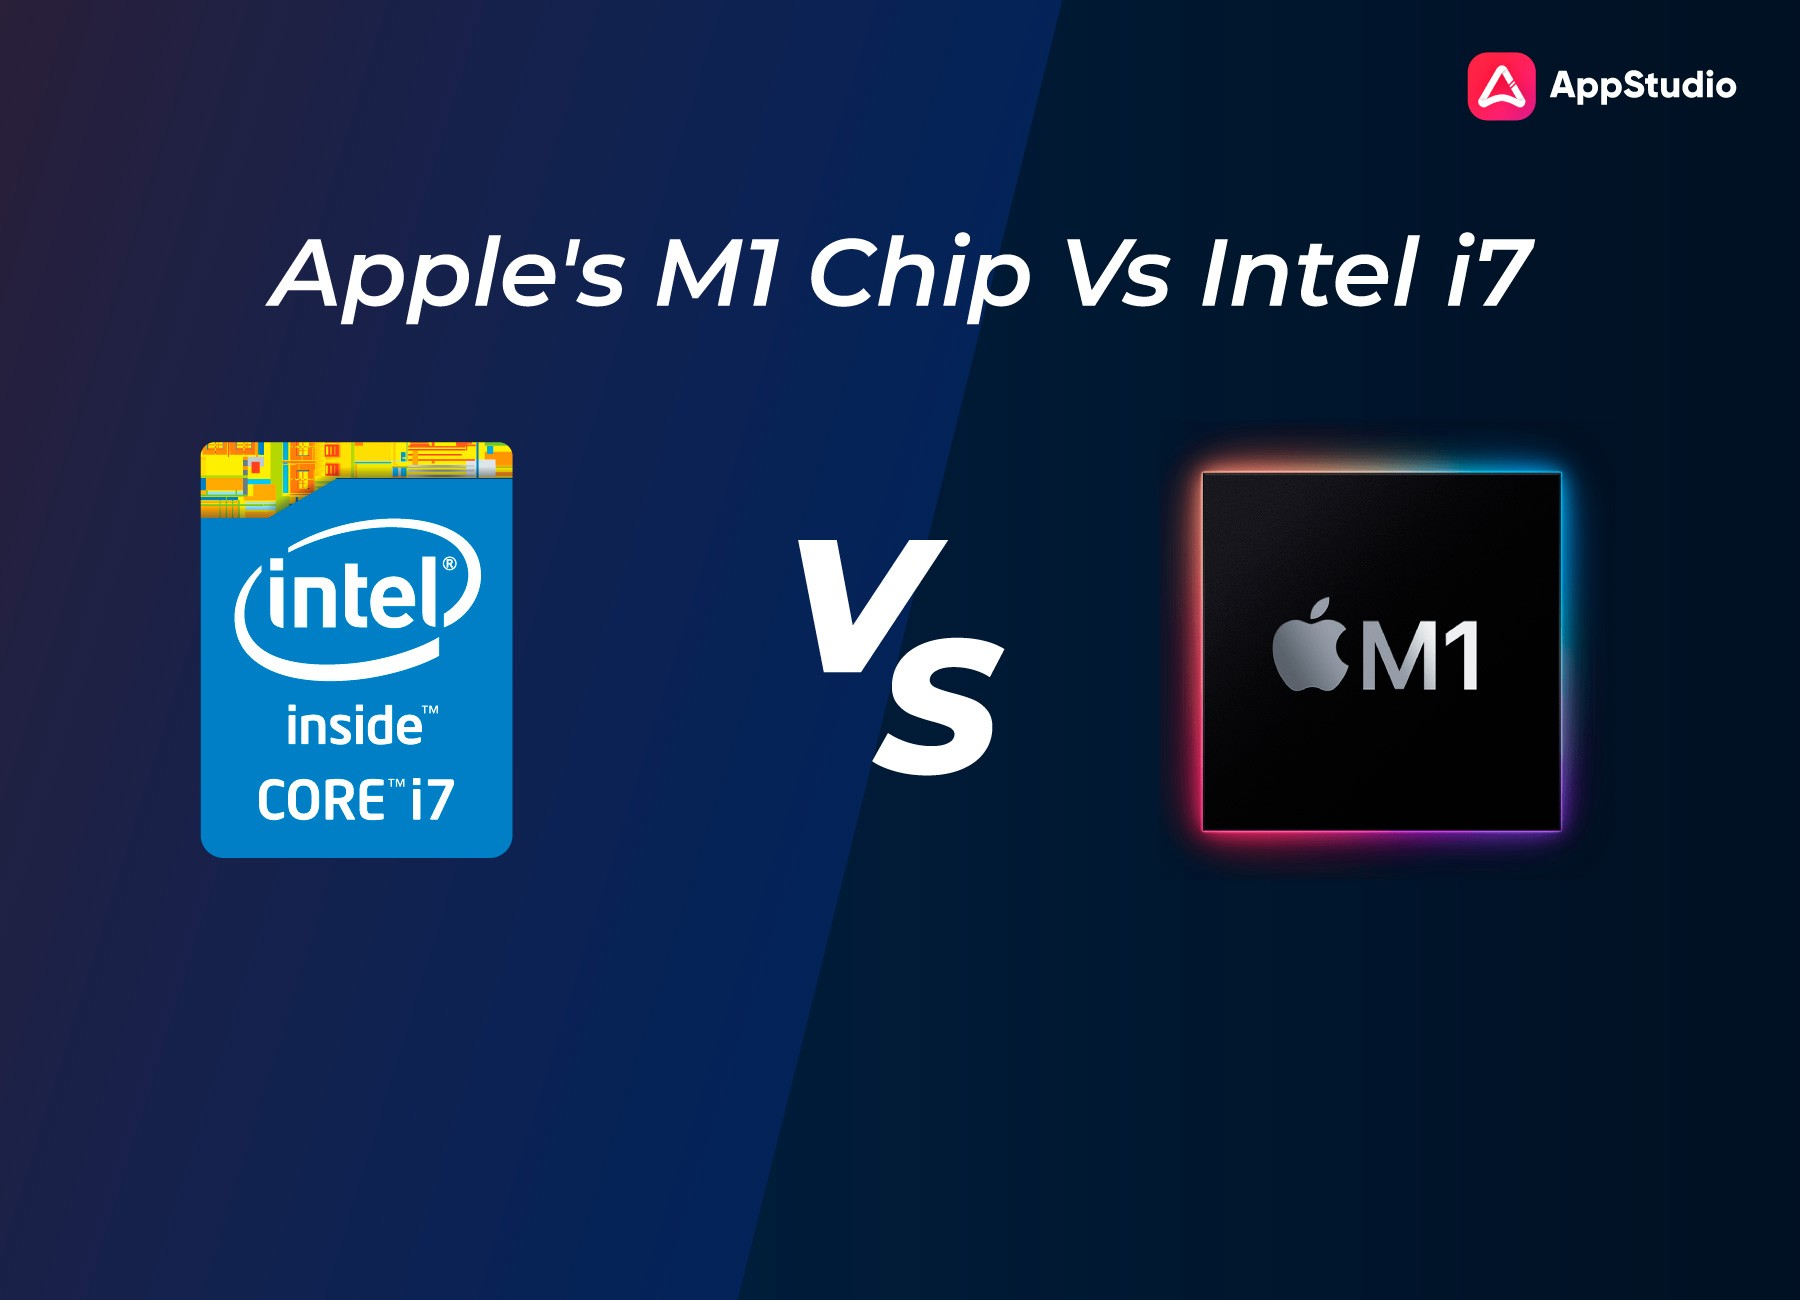 Apple's M1 Chip Vs Intel's I7 Chip